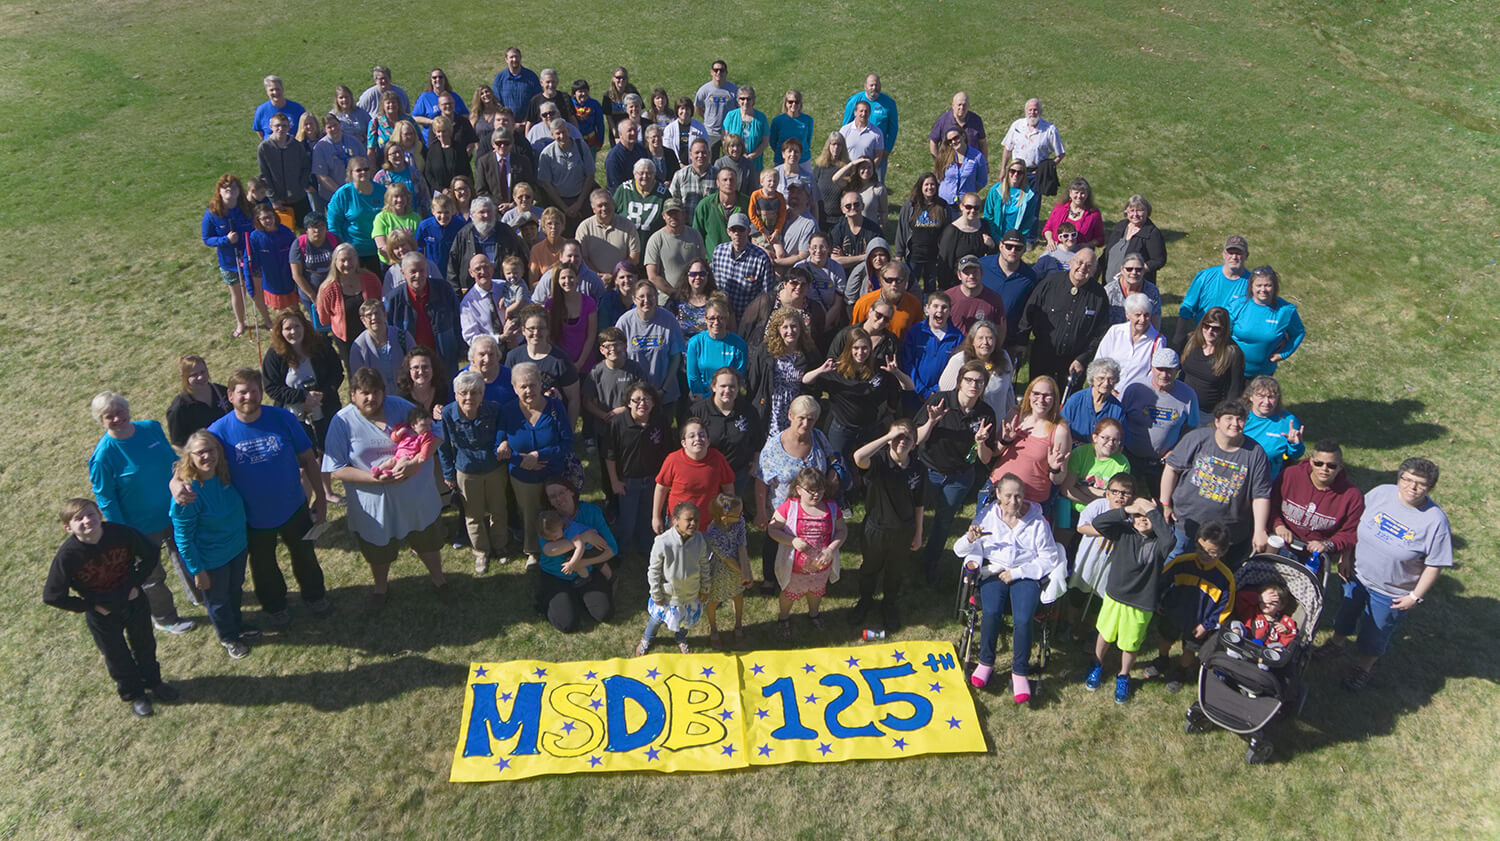 large group (100+ people) picture from MSDB's 125th Anniversary